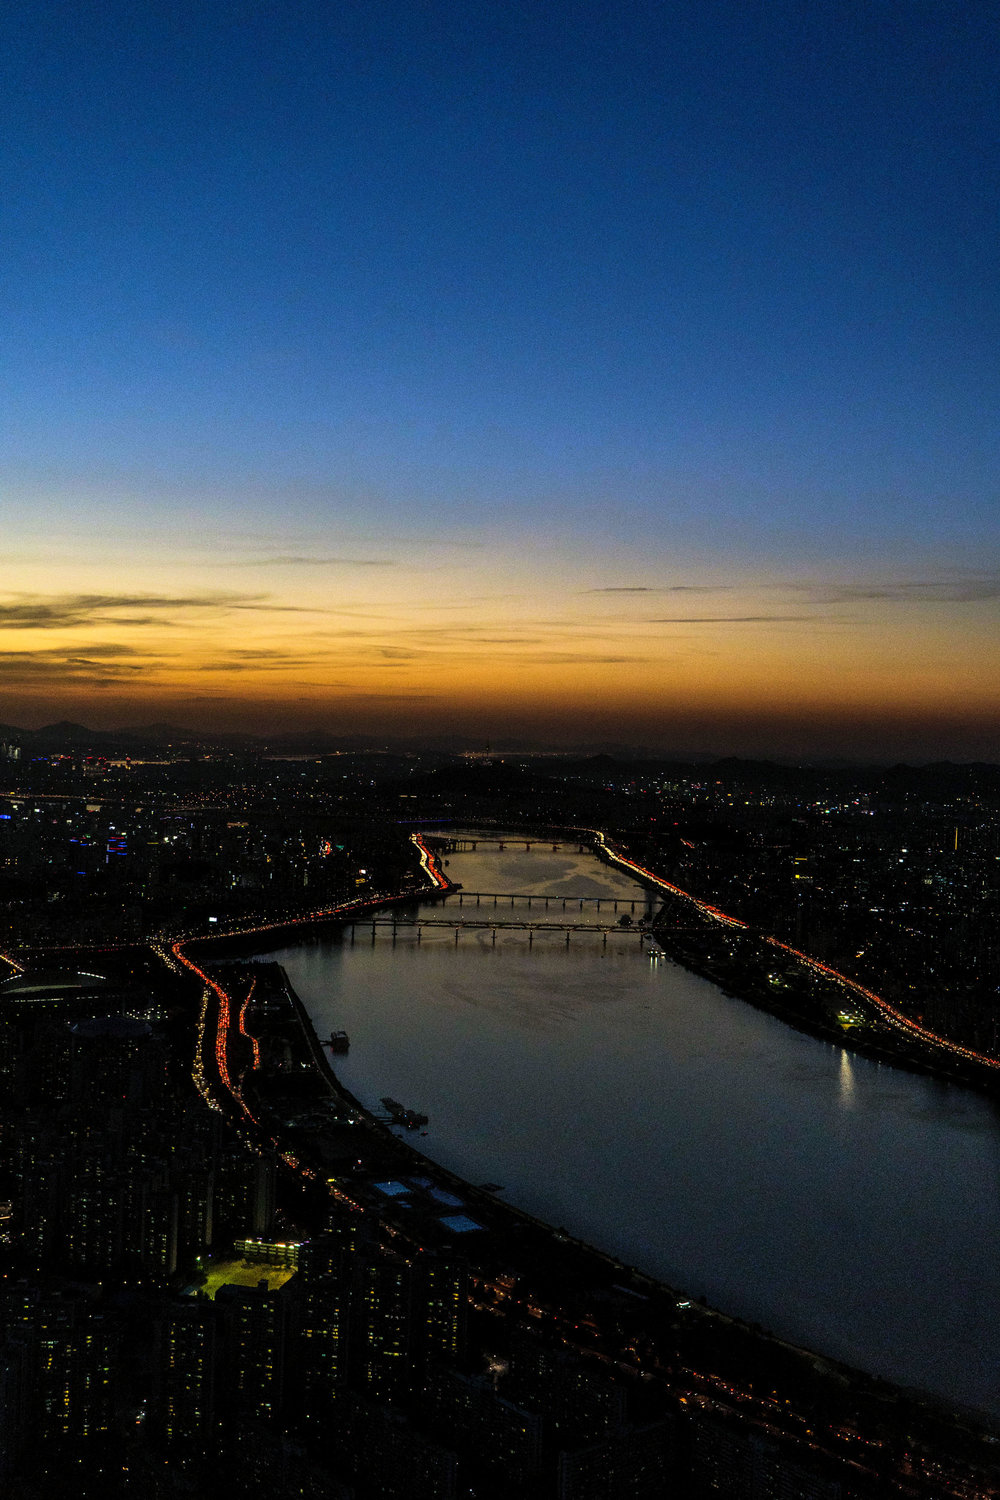 The view of Seoul at sundown from the Lotte World Tower